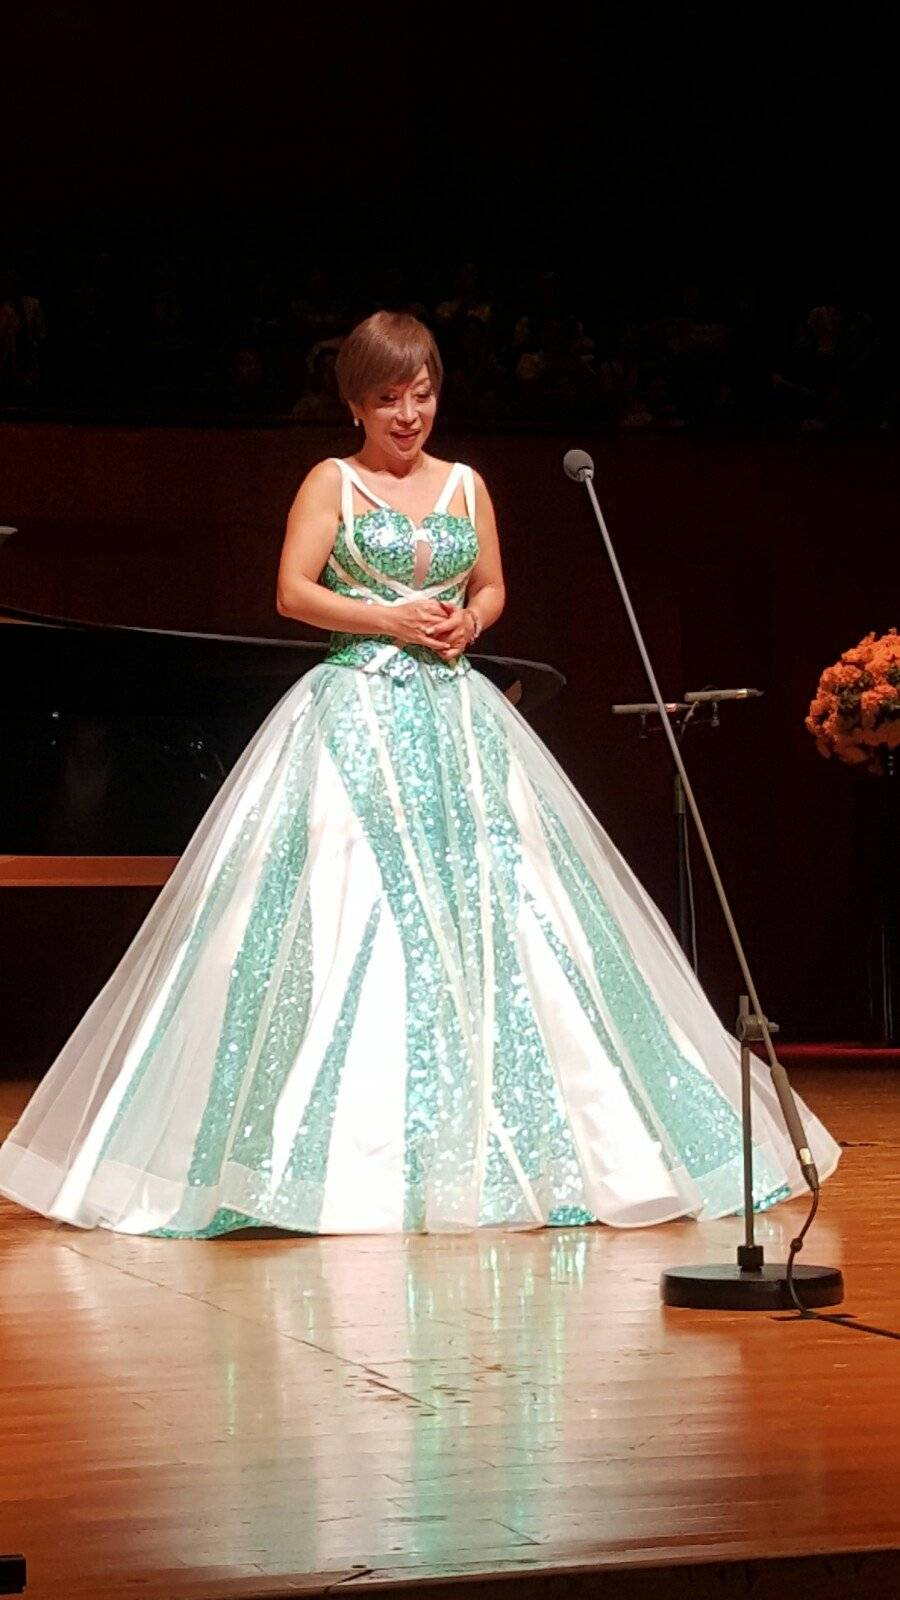 Sumi Jo 조수미 Picture Hancinema The Korean Movie And